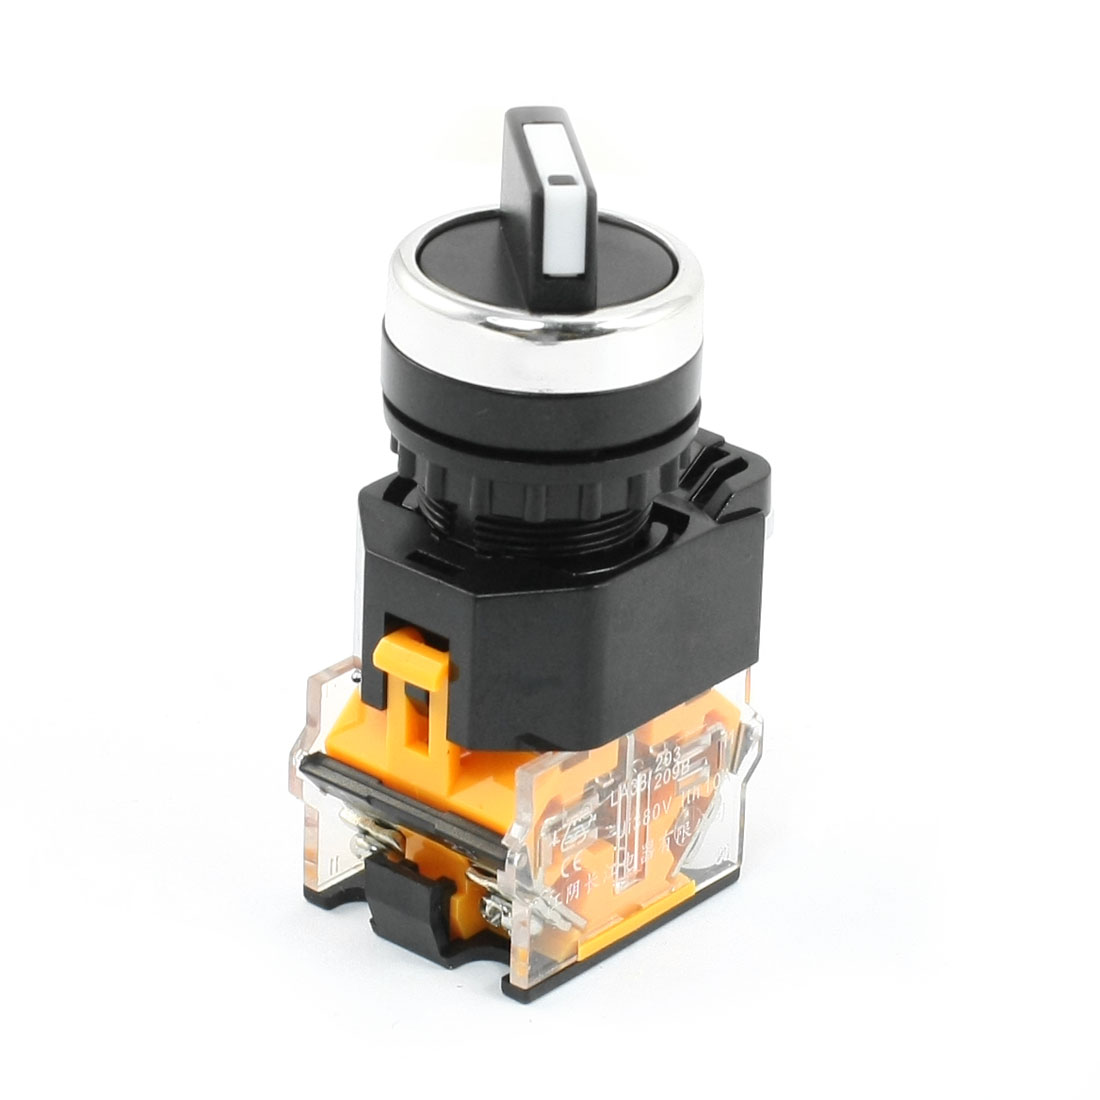 380V 10A 2 Position DPST Latching Rotary Knob Control Switch